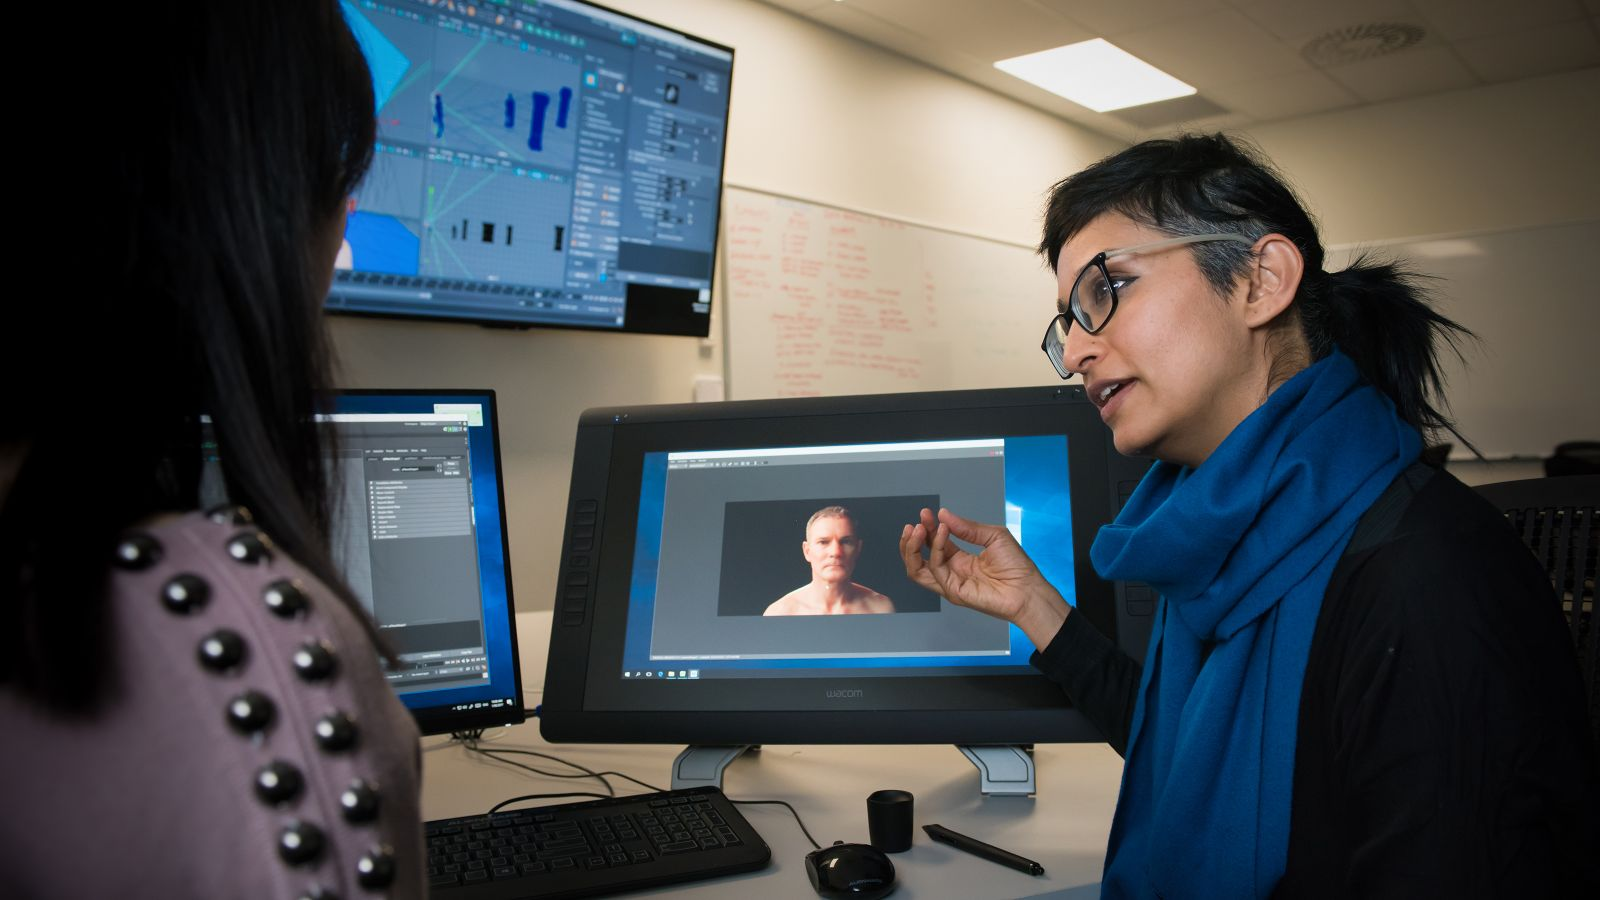 A female lecturer talks to a student with computers in the background.